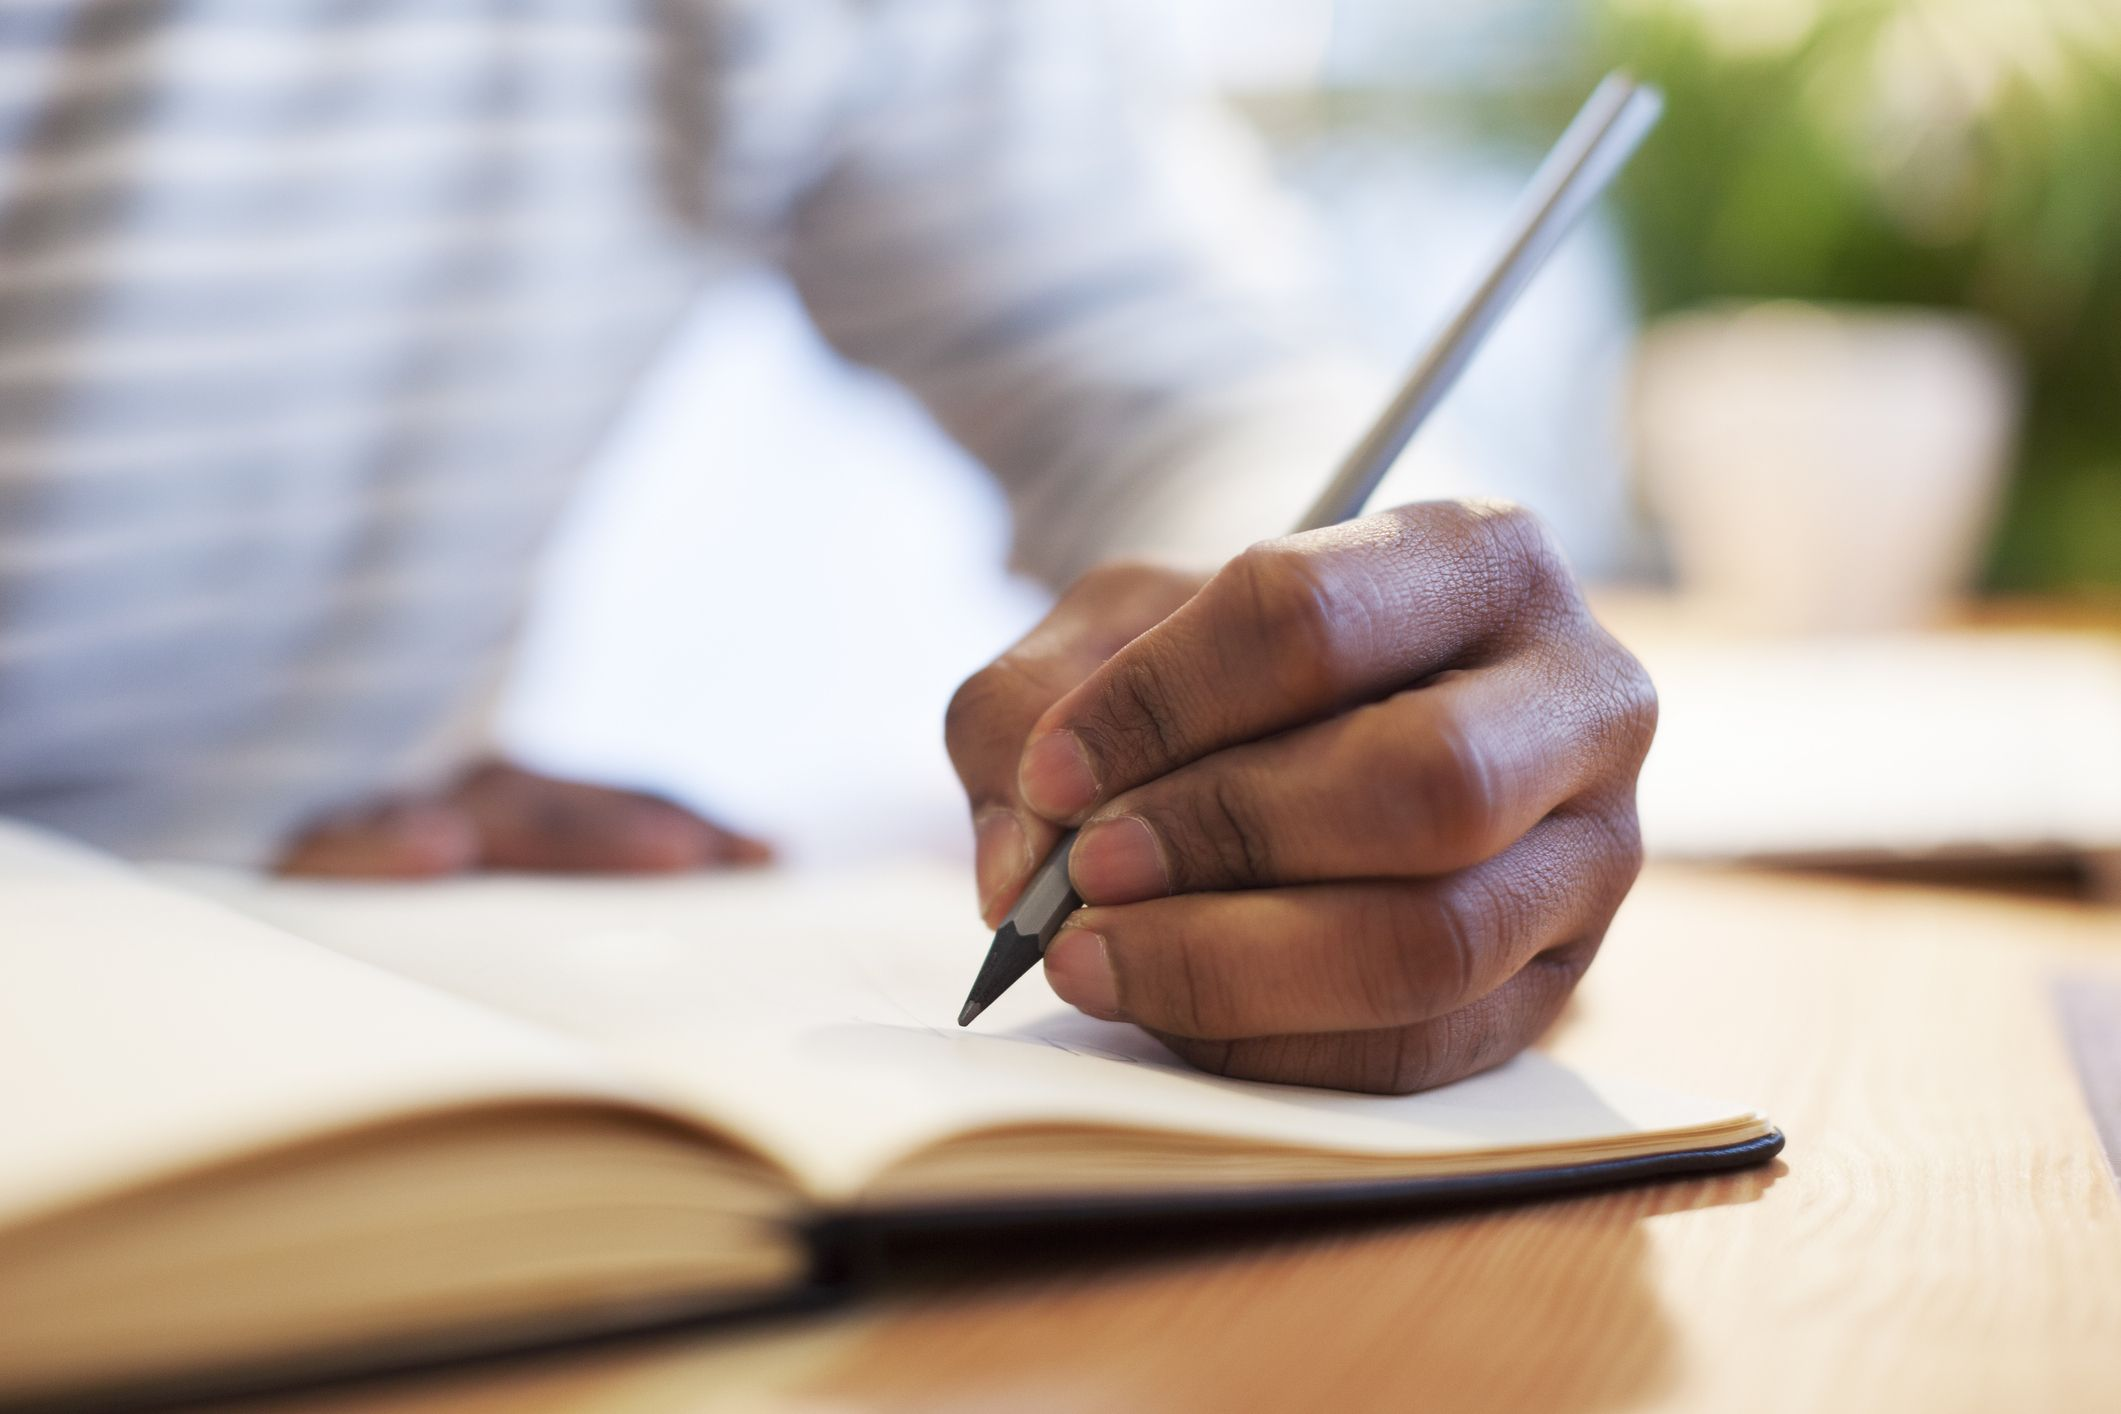 Left Handed Facts - Facts About People Who Are Left Handed